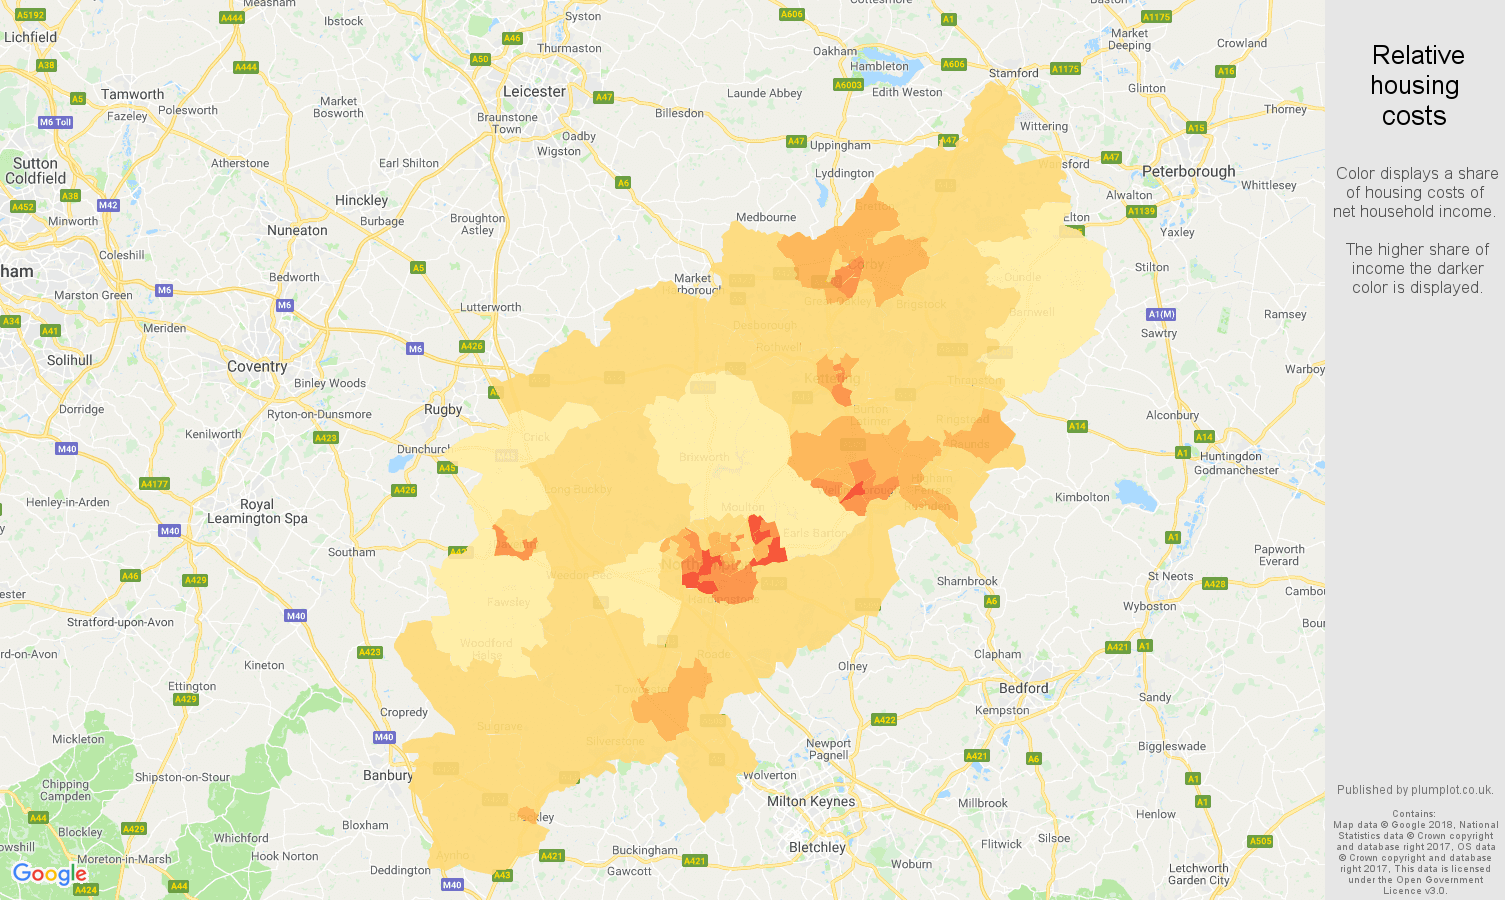 Northamptonshire relative housing costs map